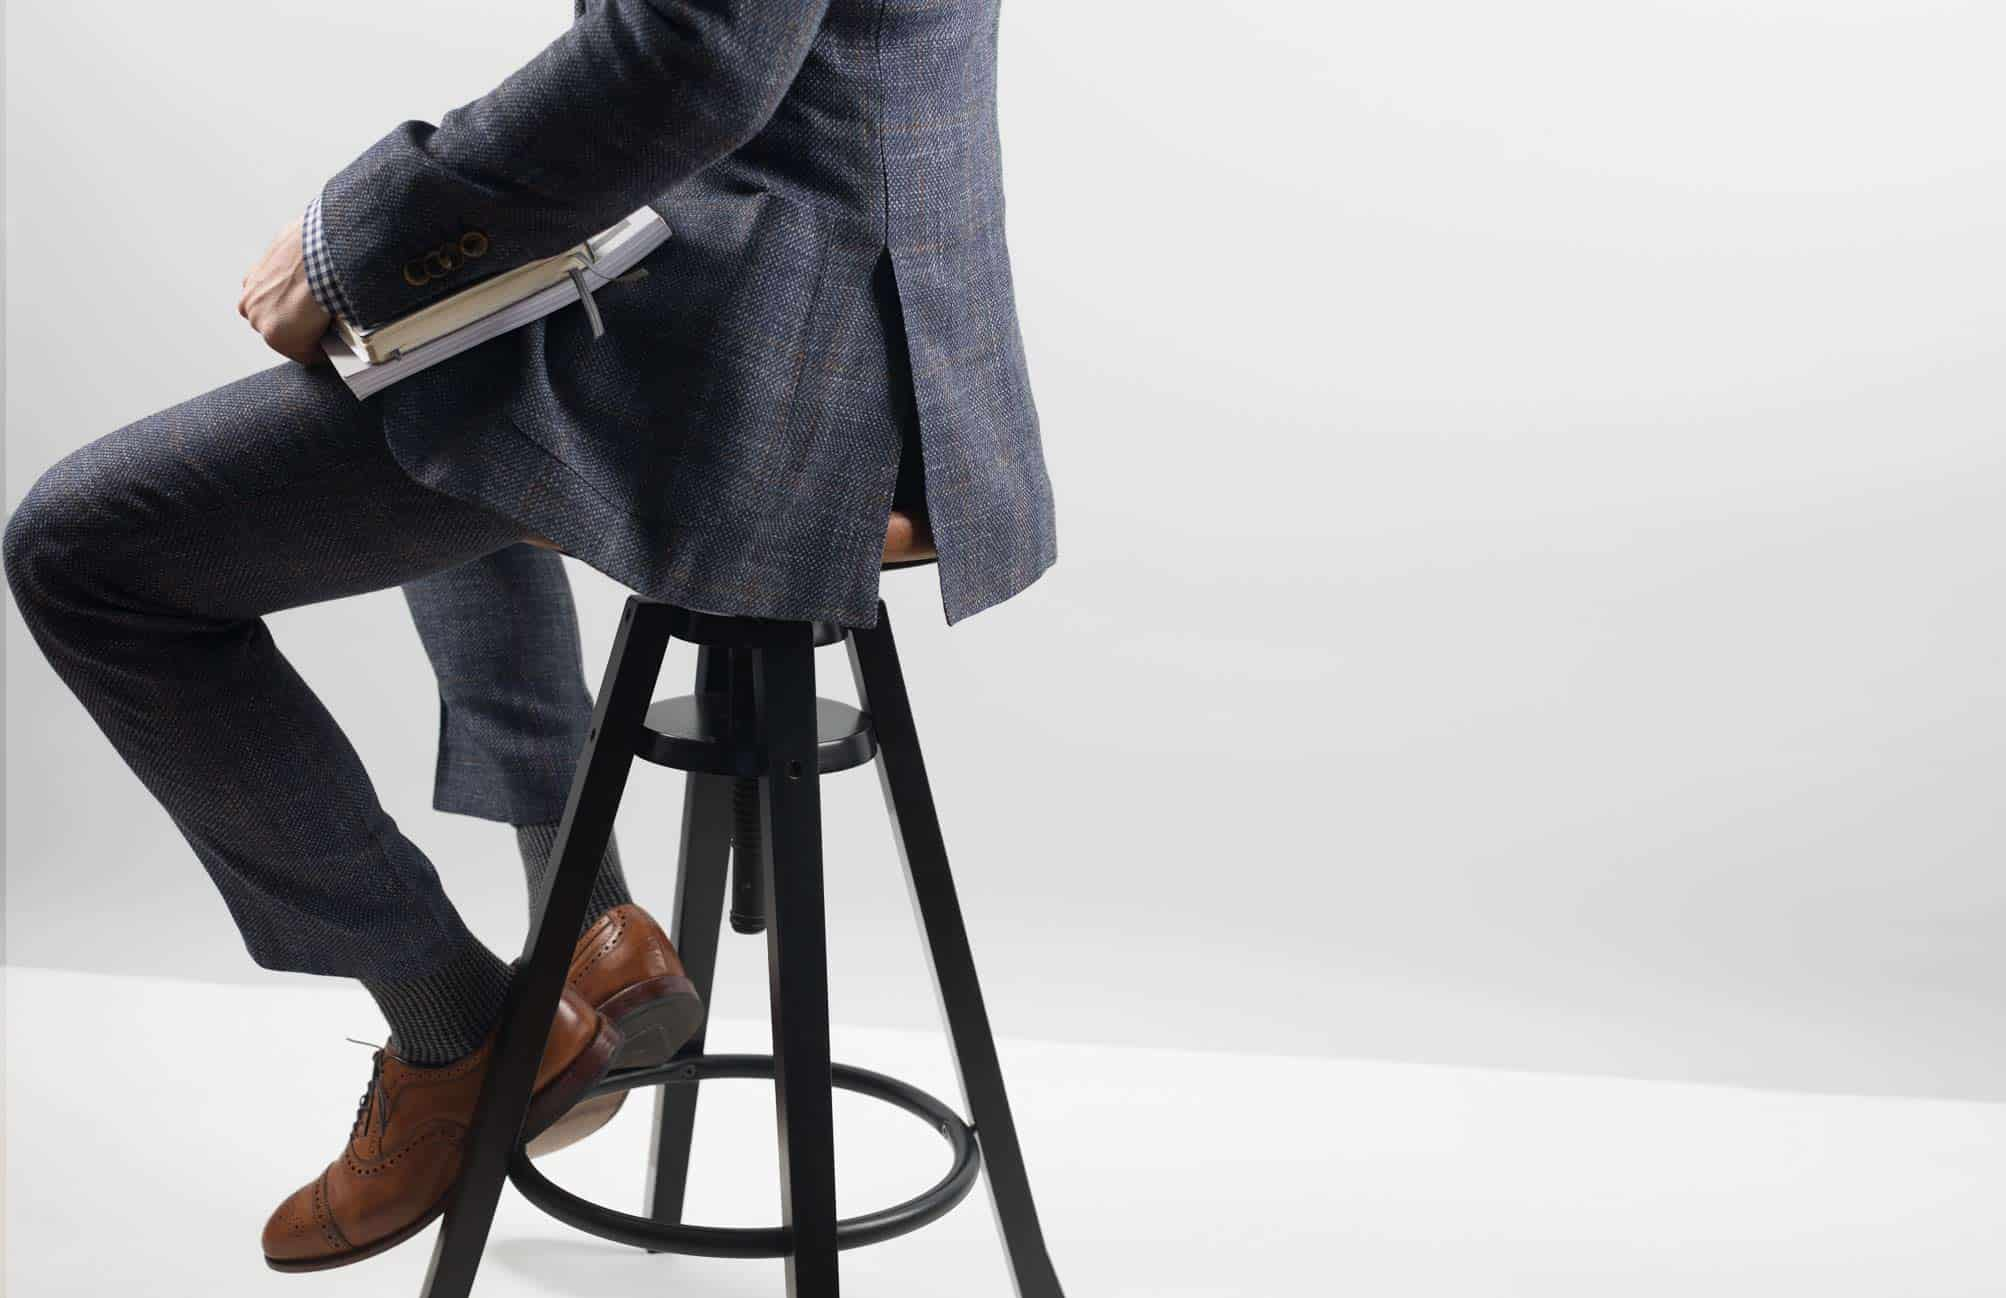 A person wearing a suit sitting on a stool